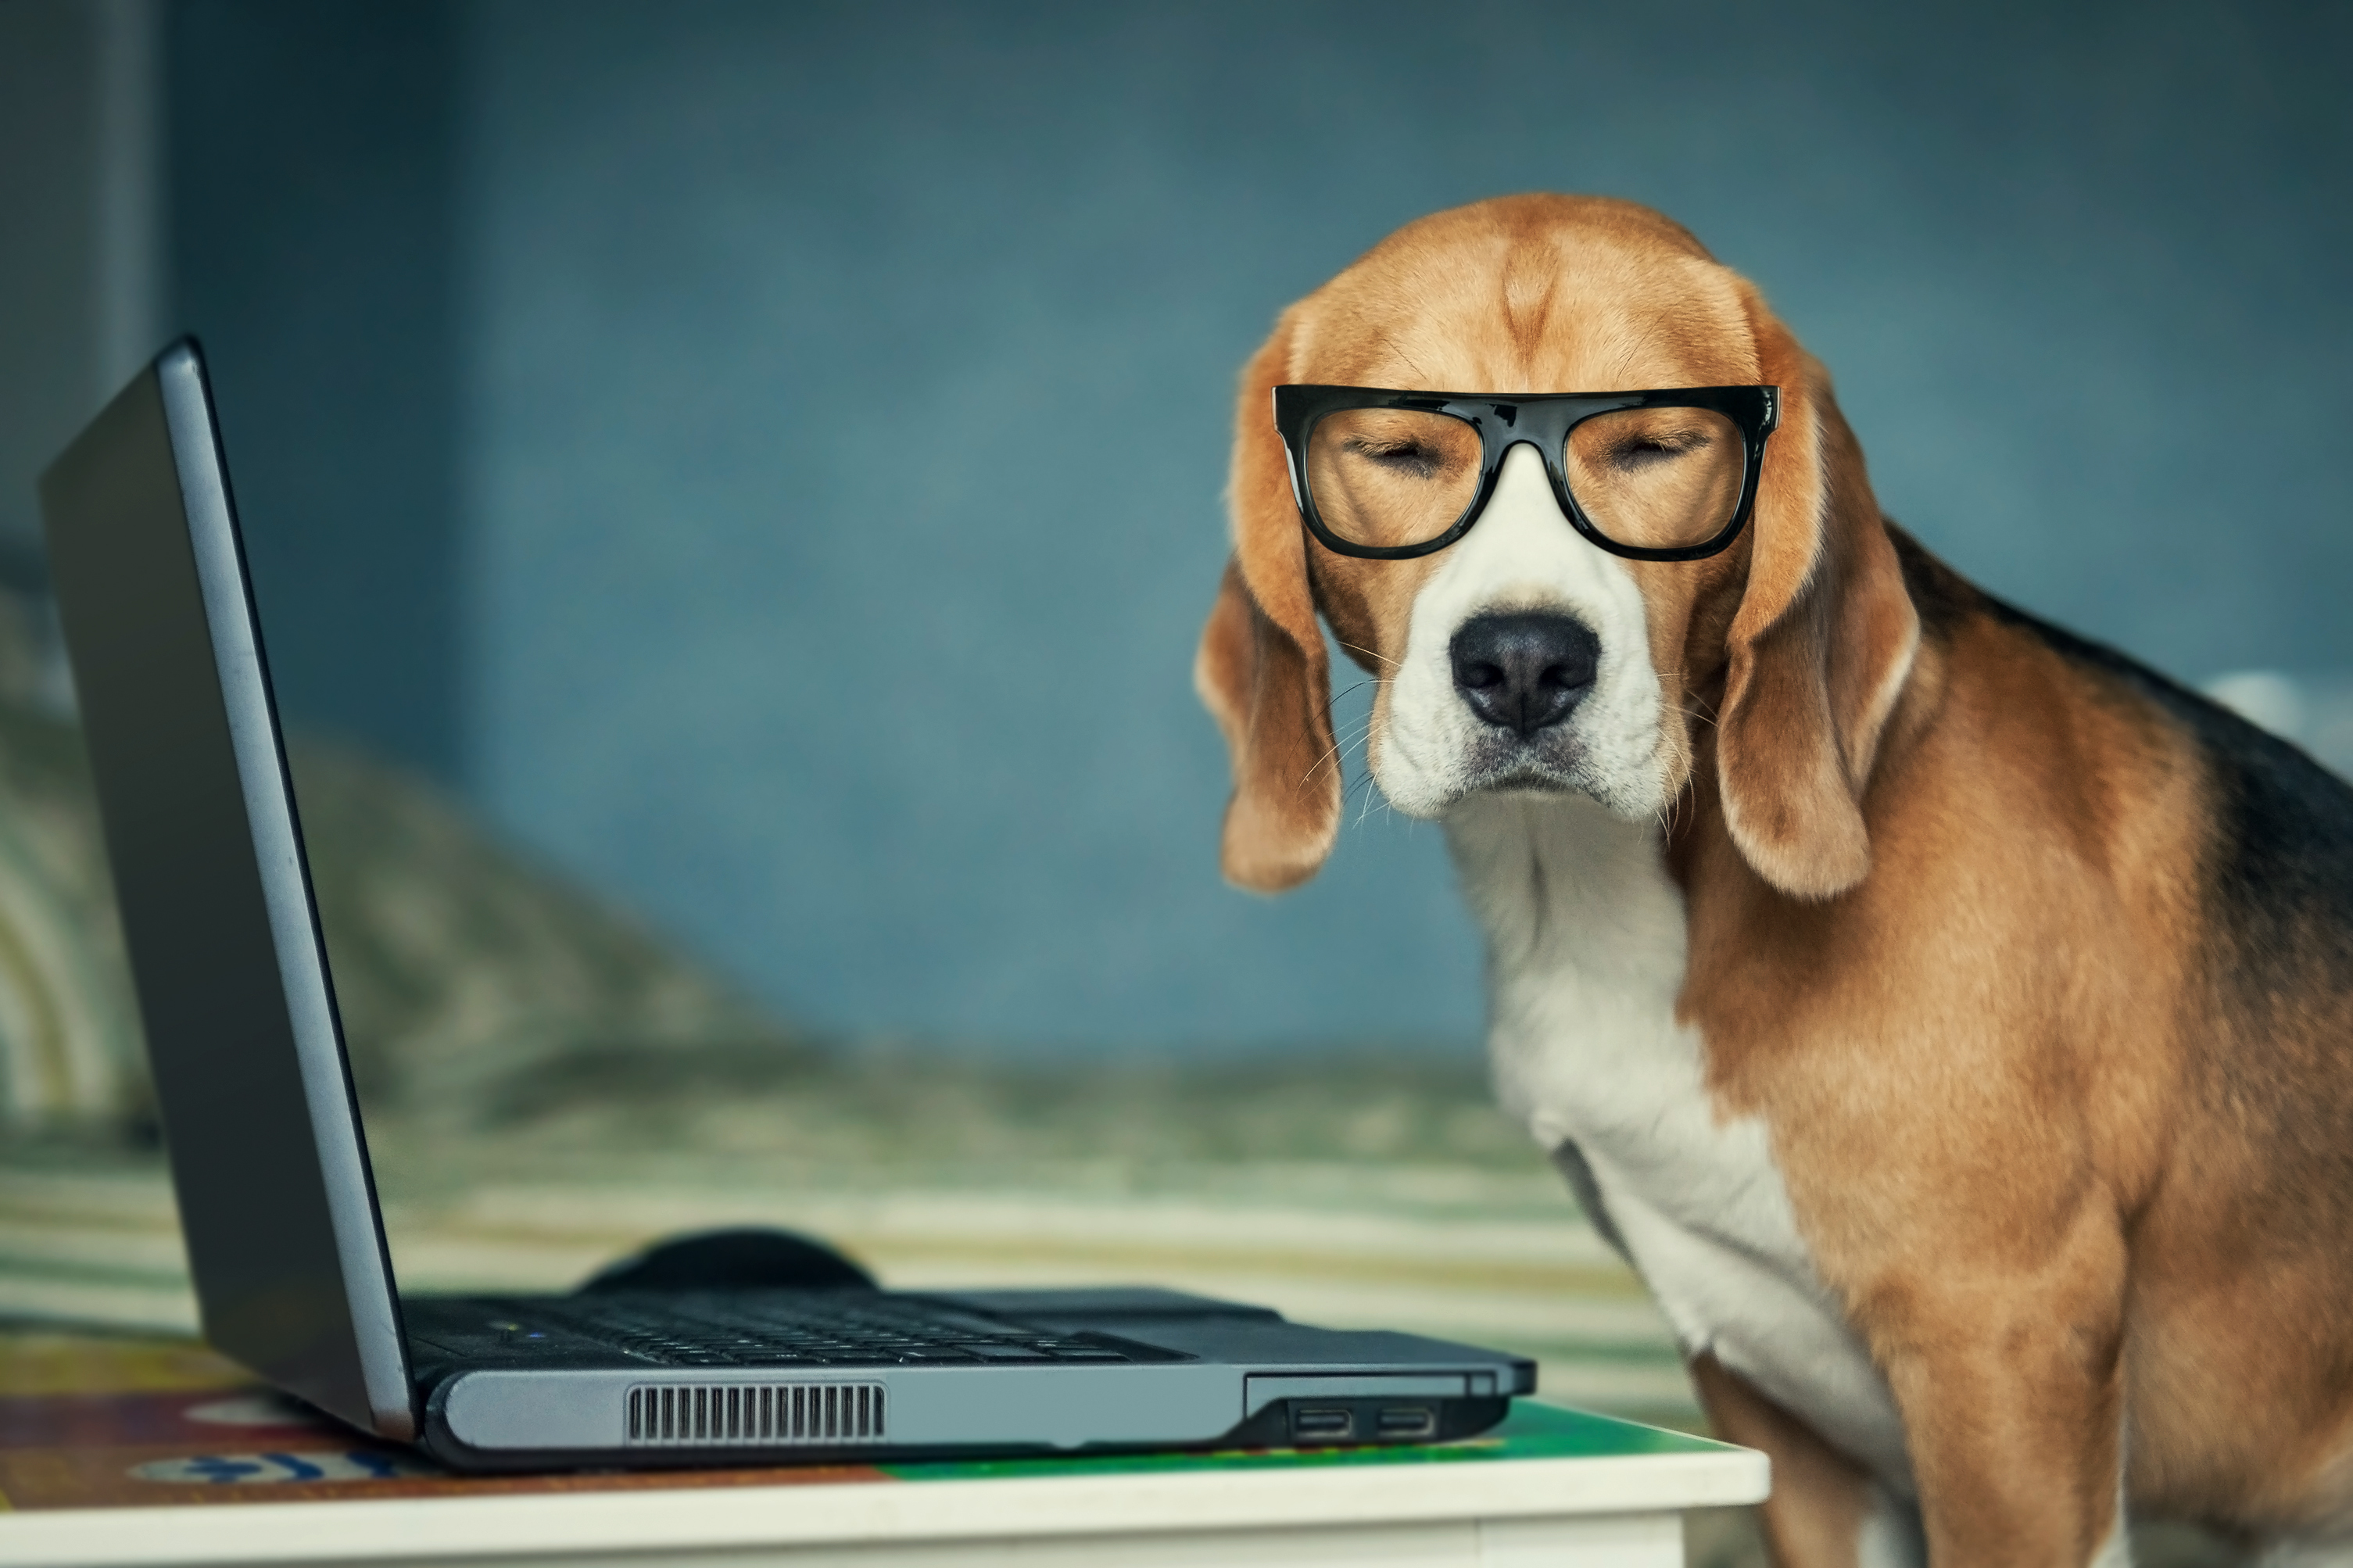 Beagle with Glasses Using a Laptop